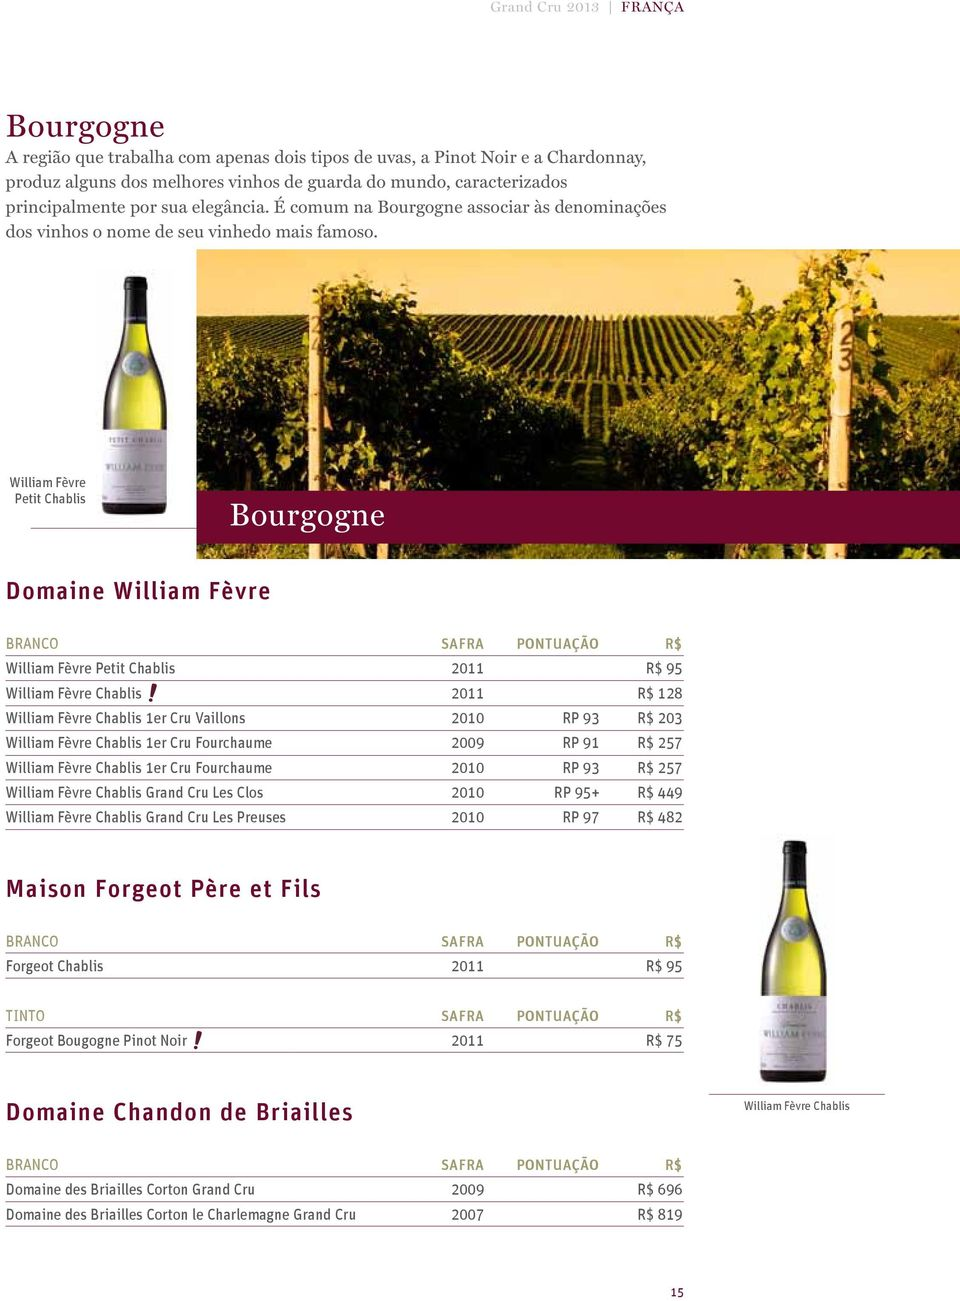 William Fèvre Petit Chablis Bourgogne Domaine William Fèvre William Fèvre Petit Chablis 2011 R$ 95 William Fèvre Chablis 2011 R$ 128 William Fèvre Chablis 1er Cru Vaillons 2010 RP 93 R$ 203 William